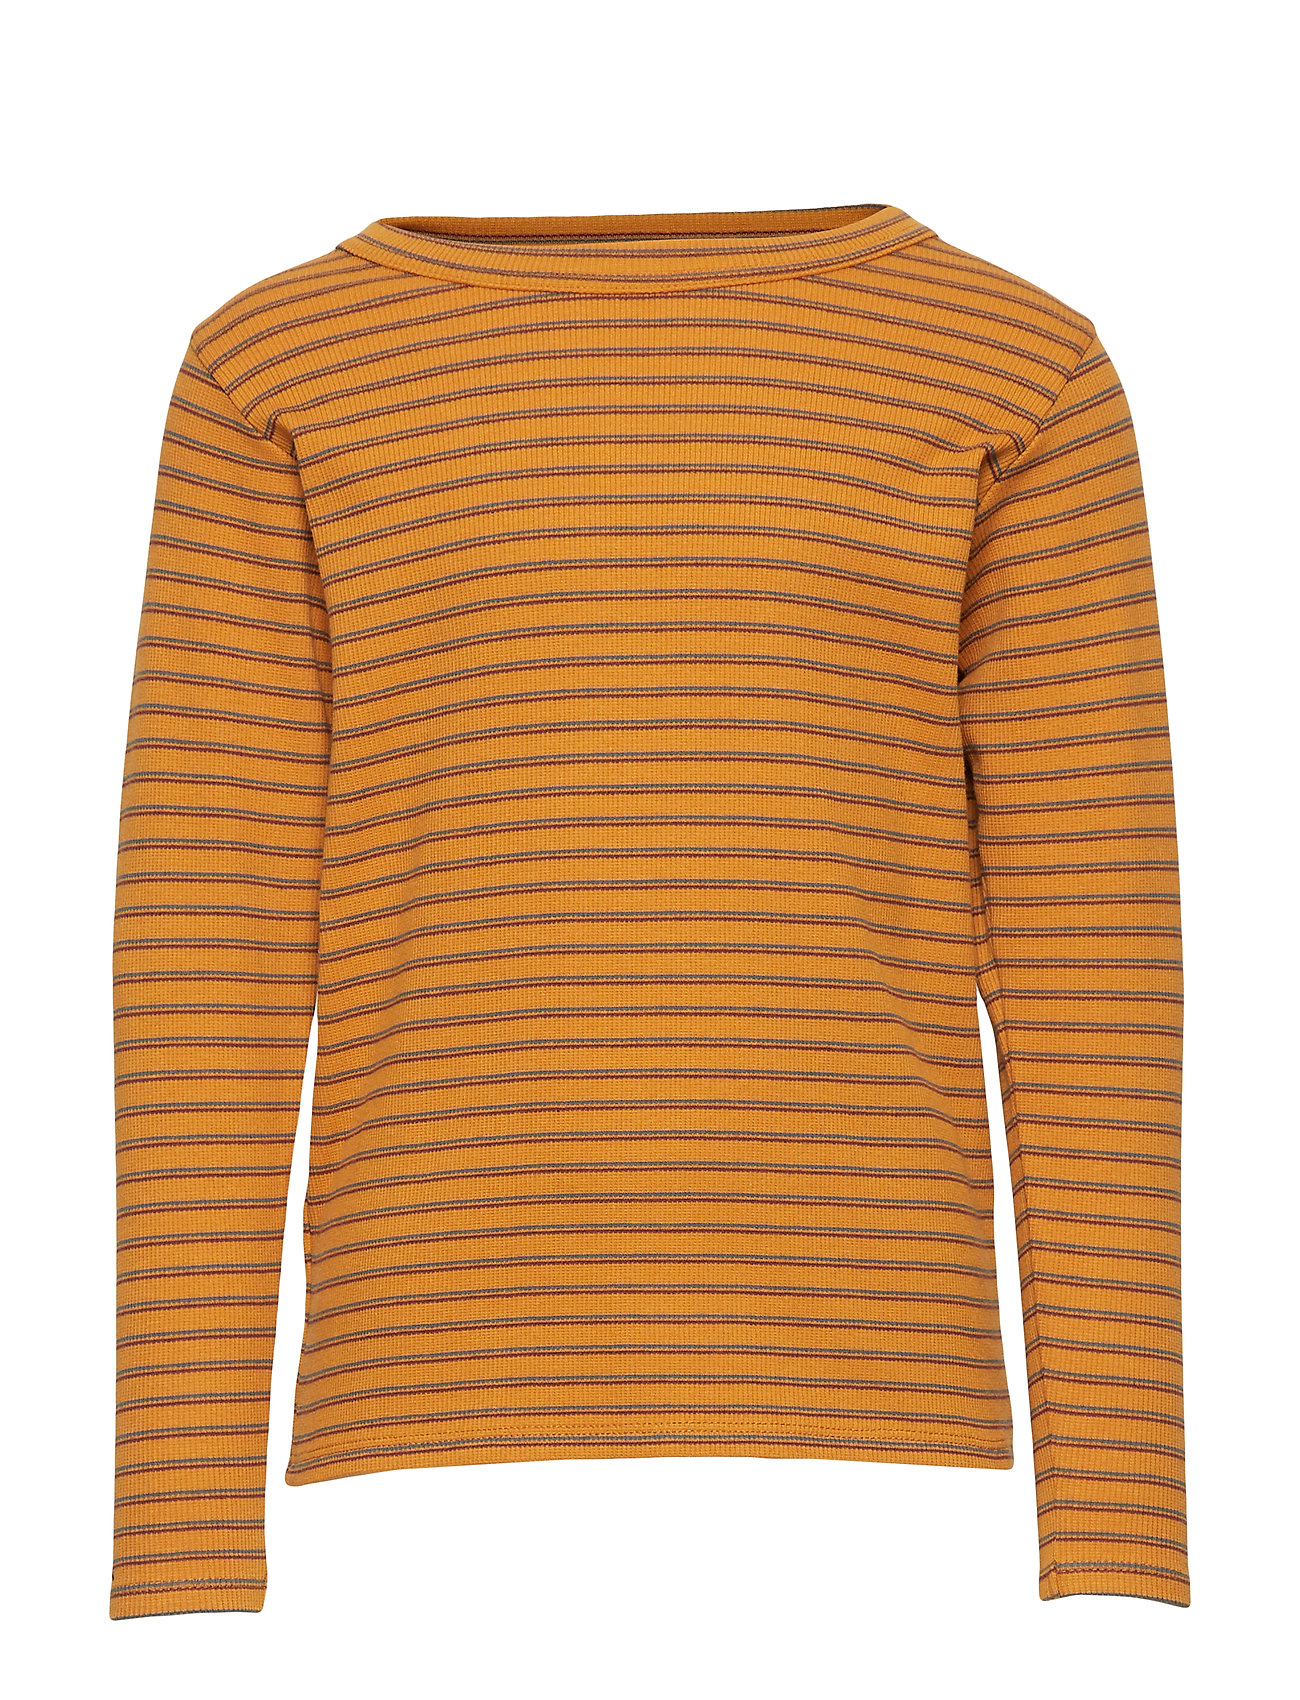 Soft Gallery Emmanuel T-shirt - INCA GOLD, AOP DOUBLE RIBBON